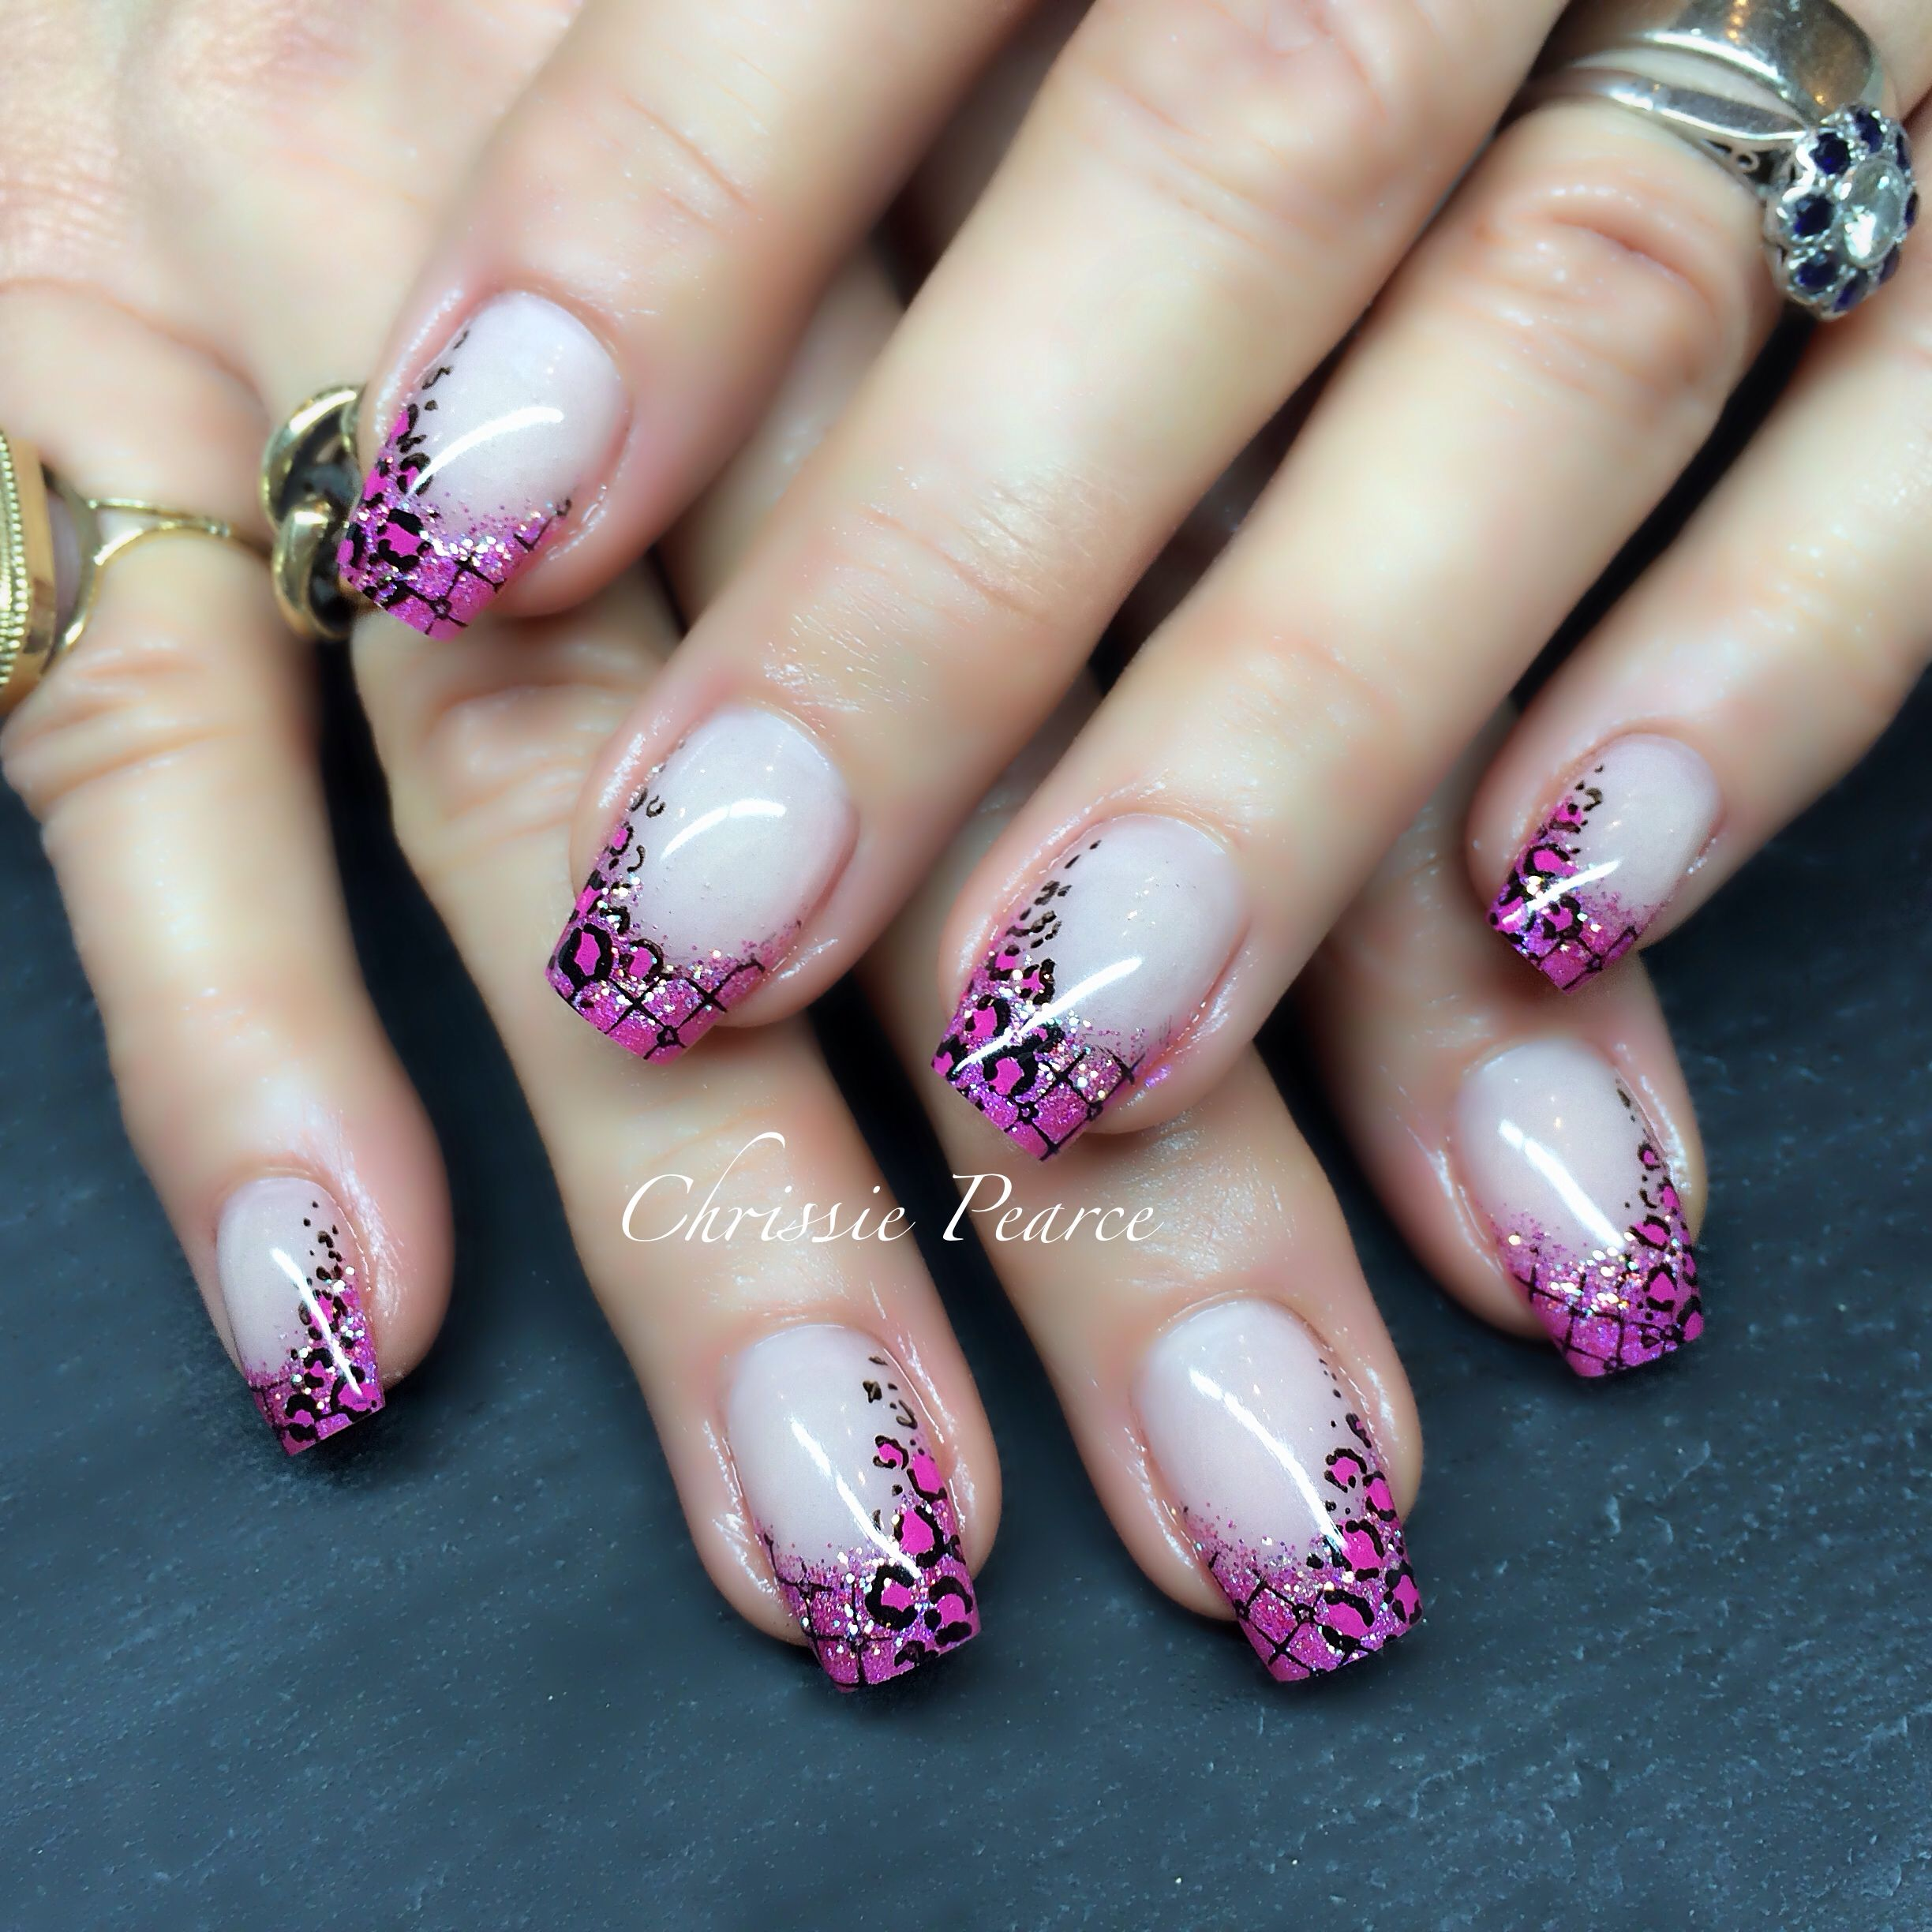 pinselmalerei | Nageldesign Bilder by World Nails Nailart Galerie ...